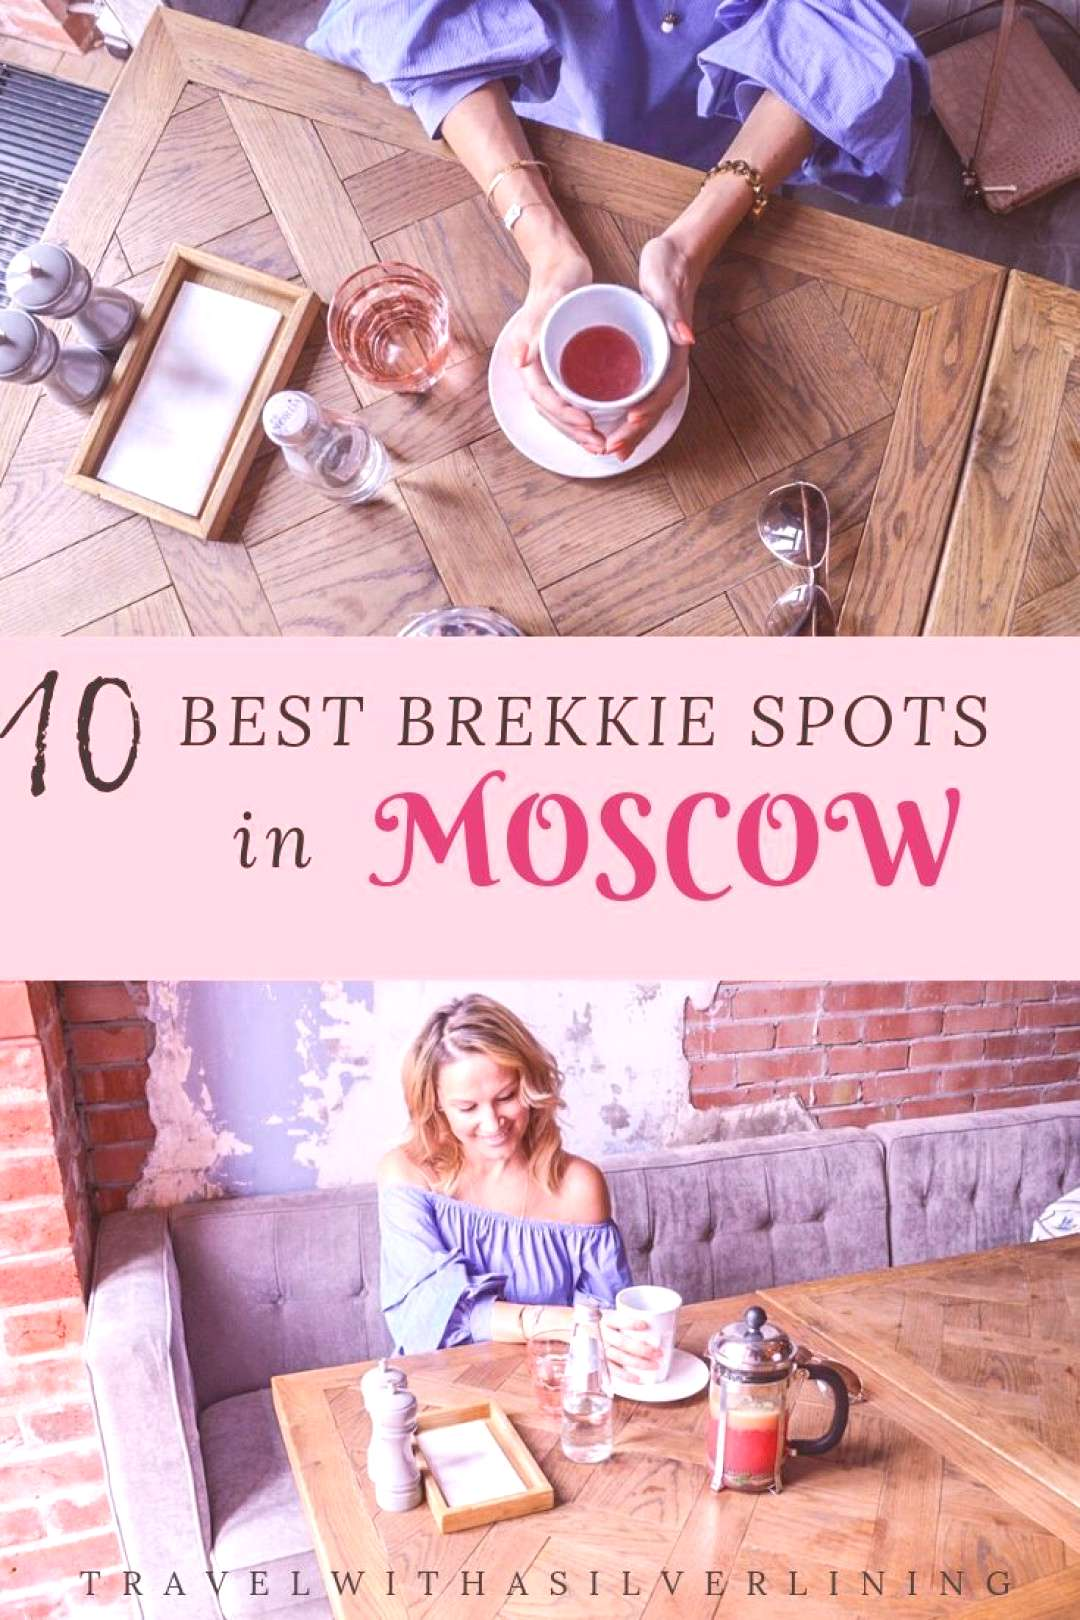 Breakfast in Moscow: Top 10 Hip & Cozy Spots to Start Your Morning! Craving a cute, tasty, hole in